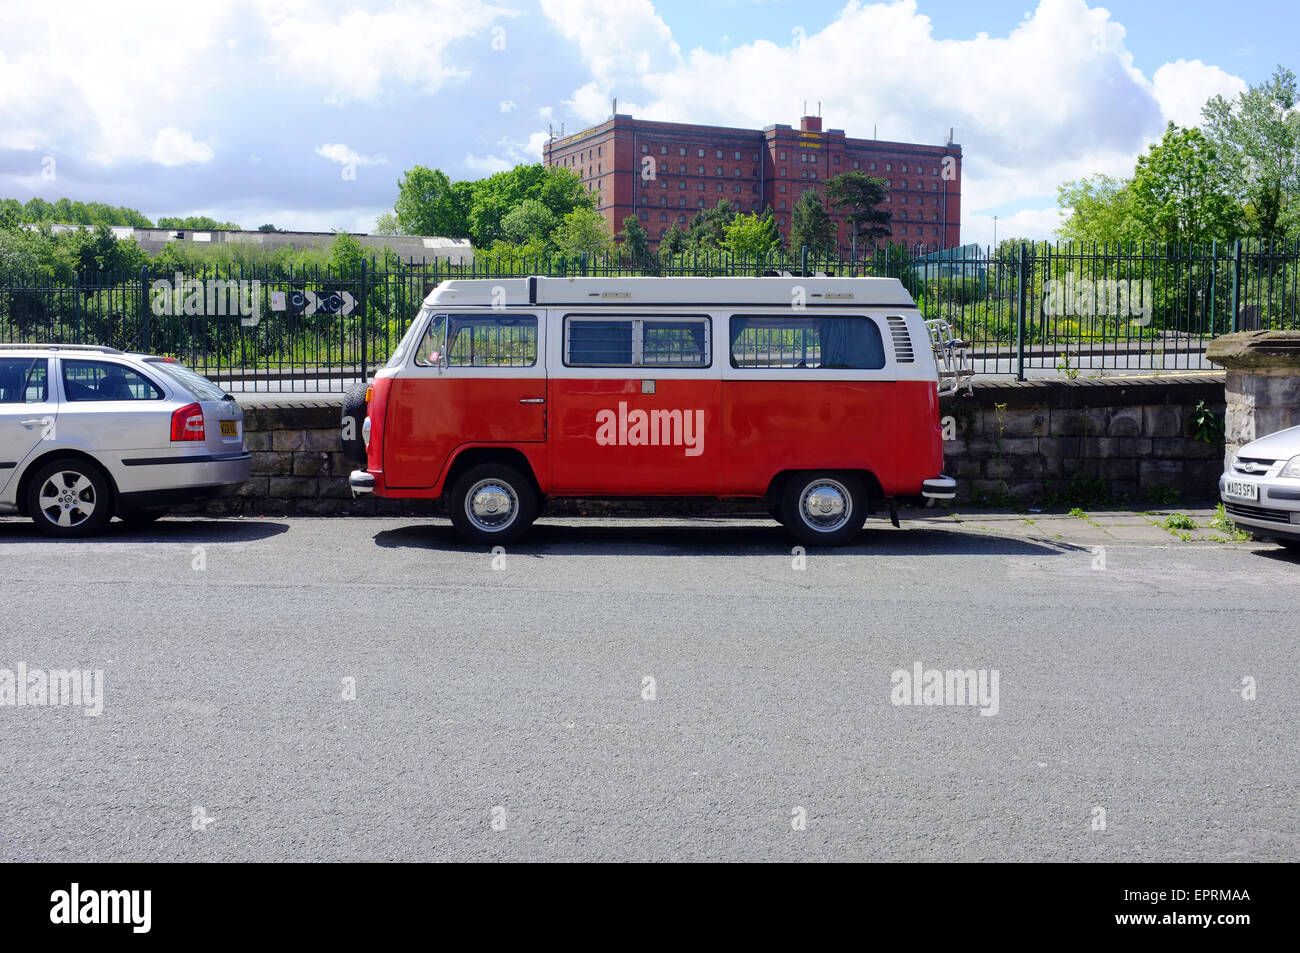 A vintage red and white VW campervan parked on the side of the road in Bristol, UK. - Stock Image